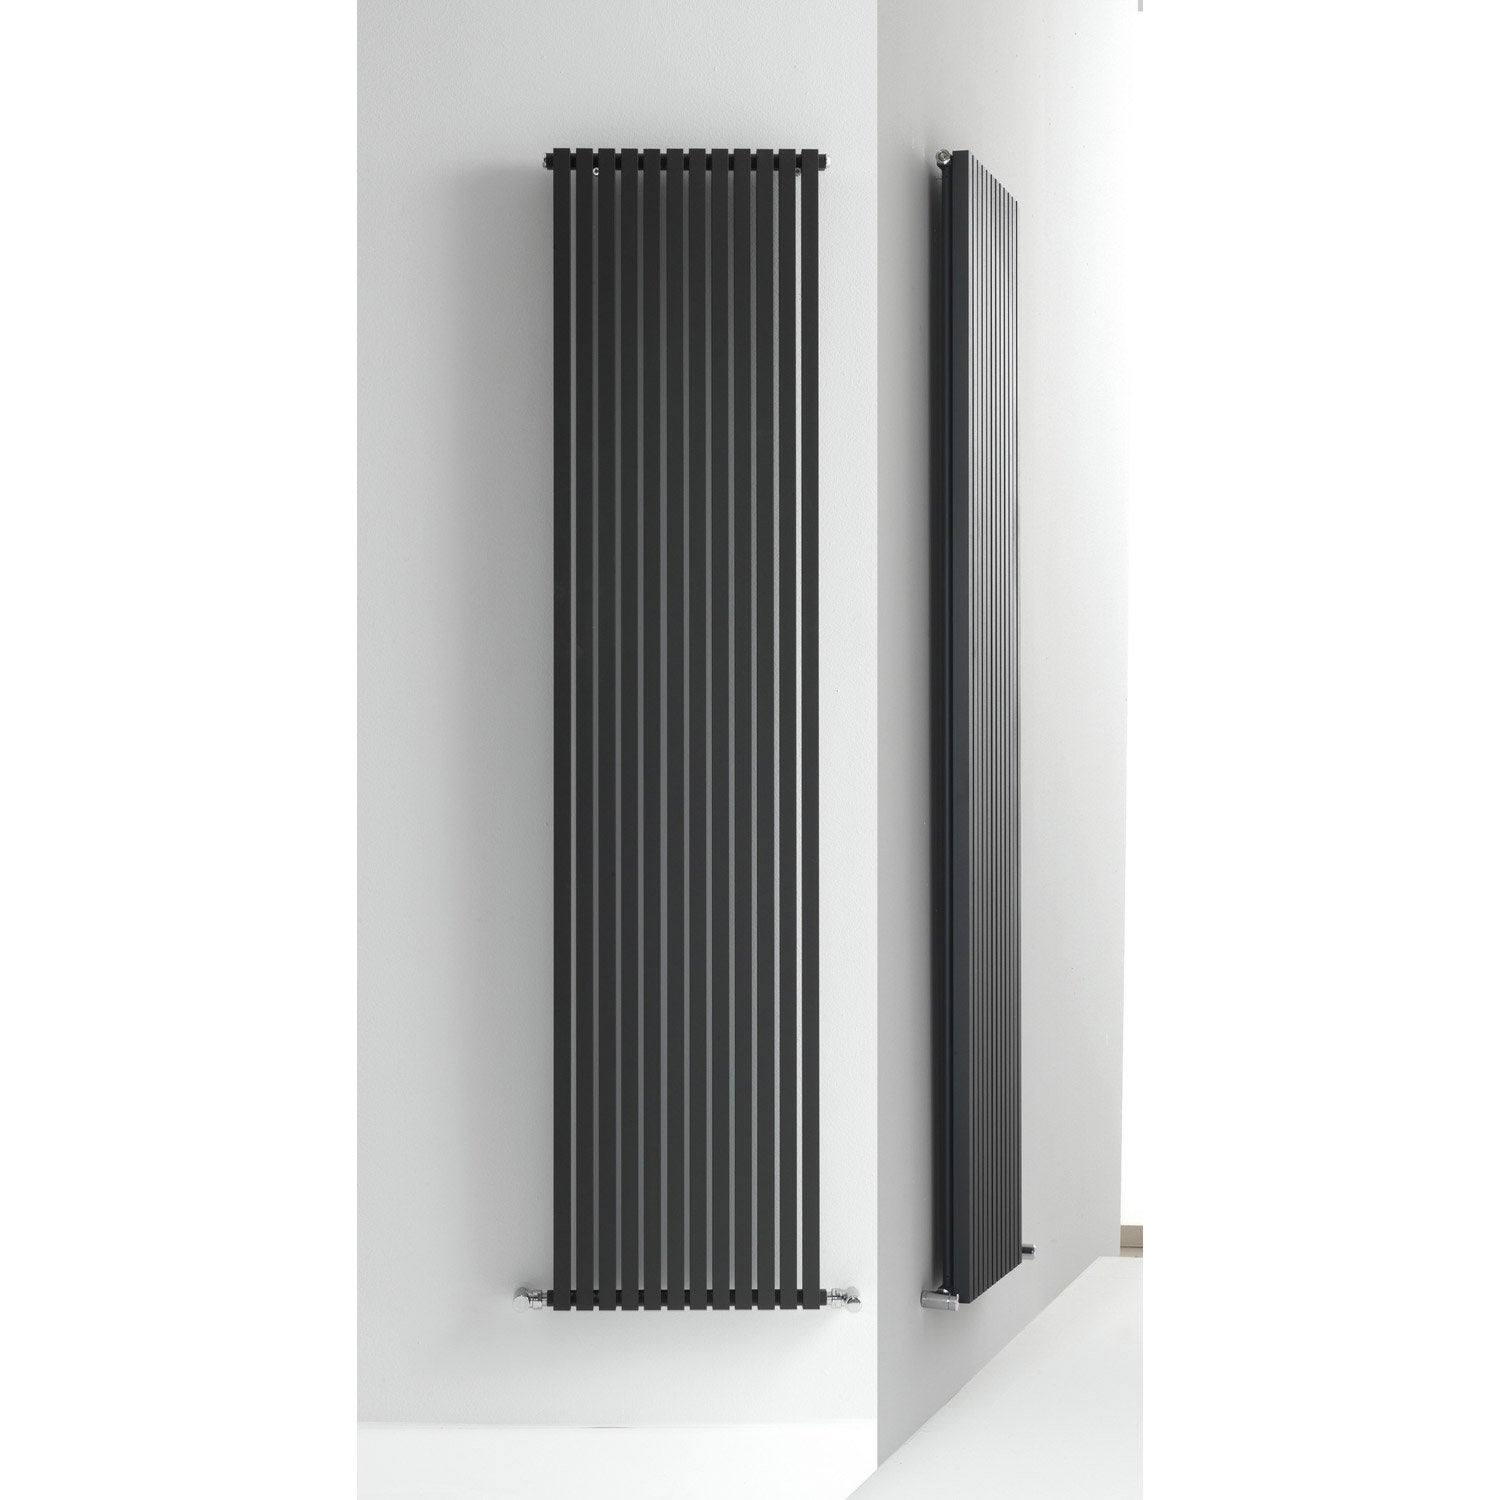 radiateur chauffage central aluminium hox quad 1390w leroy merlin. Black Bedroom Furniture Sets. Home Design Ideas